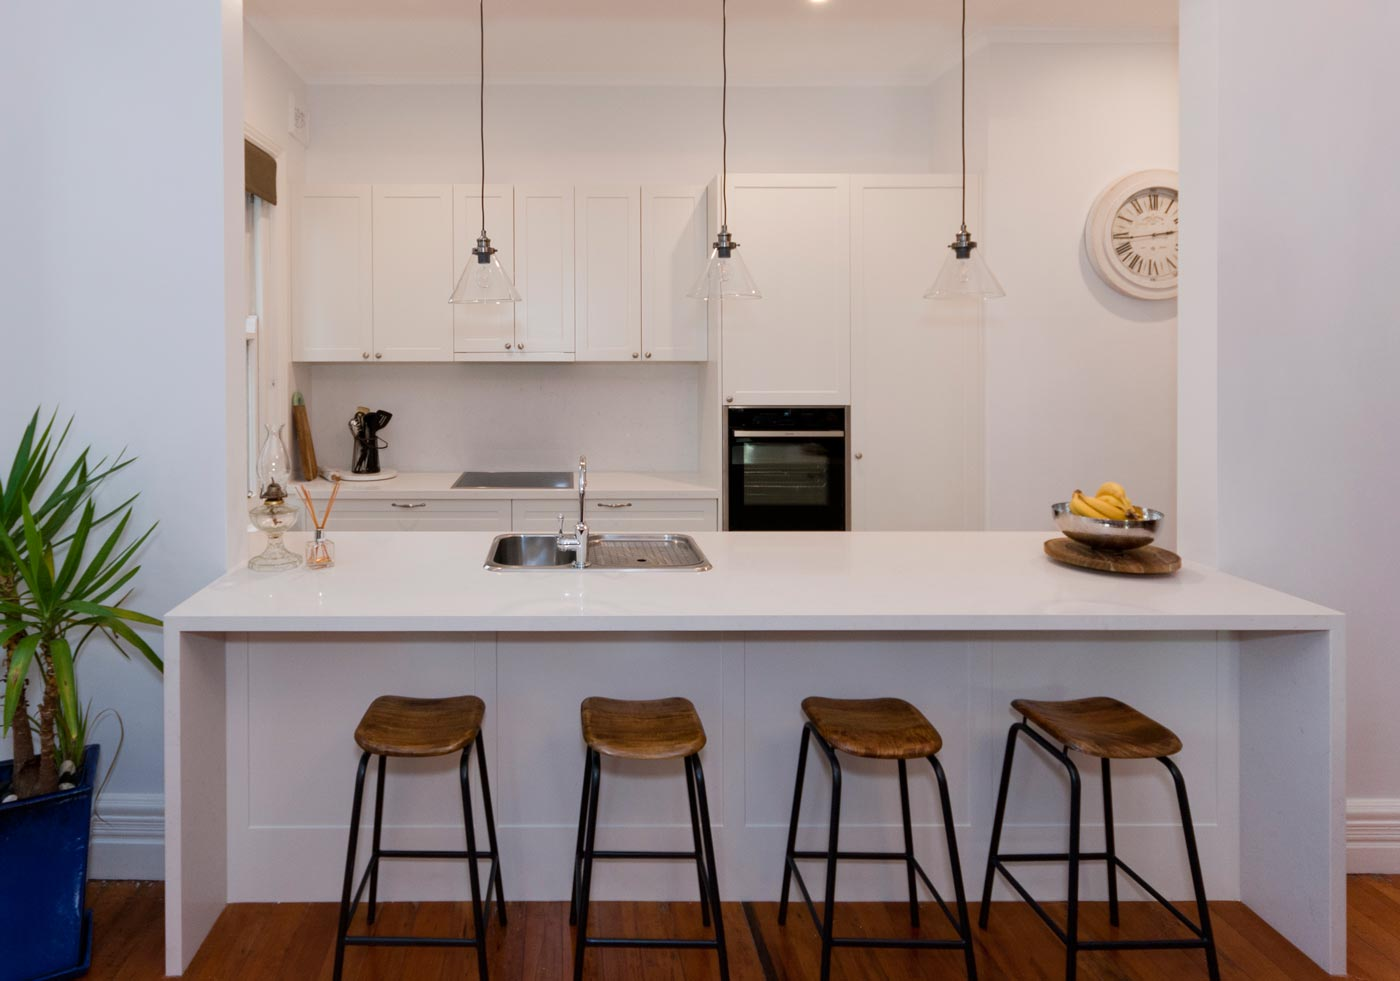 Classic white kitchen design featuring Caesarstone Pure White benthop, Dulux Whisper White poly doors, Neff appliances, Clark sink & Astra Walker tapware. Designed by Premier Kitchens Australia.